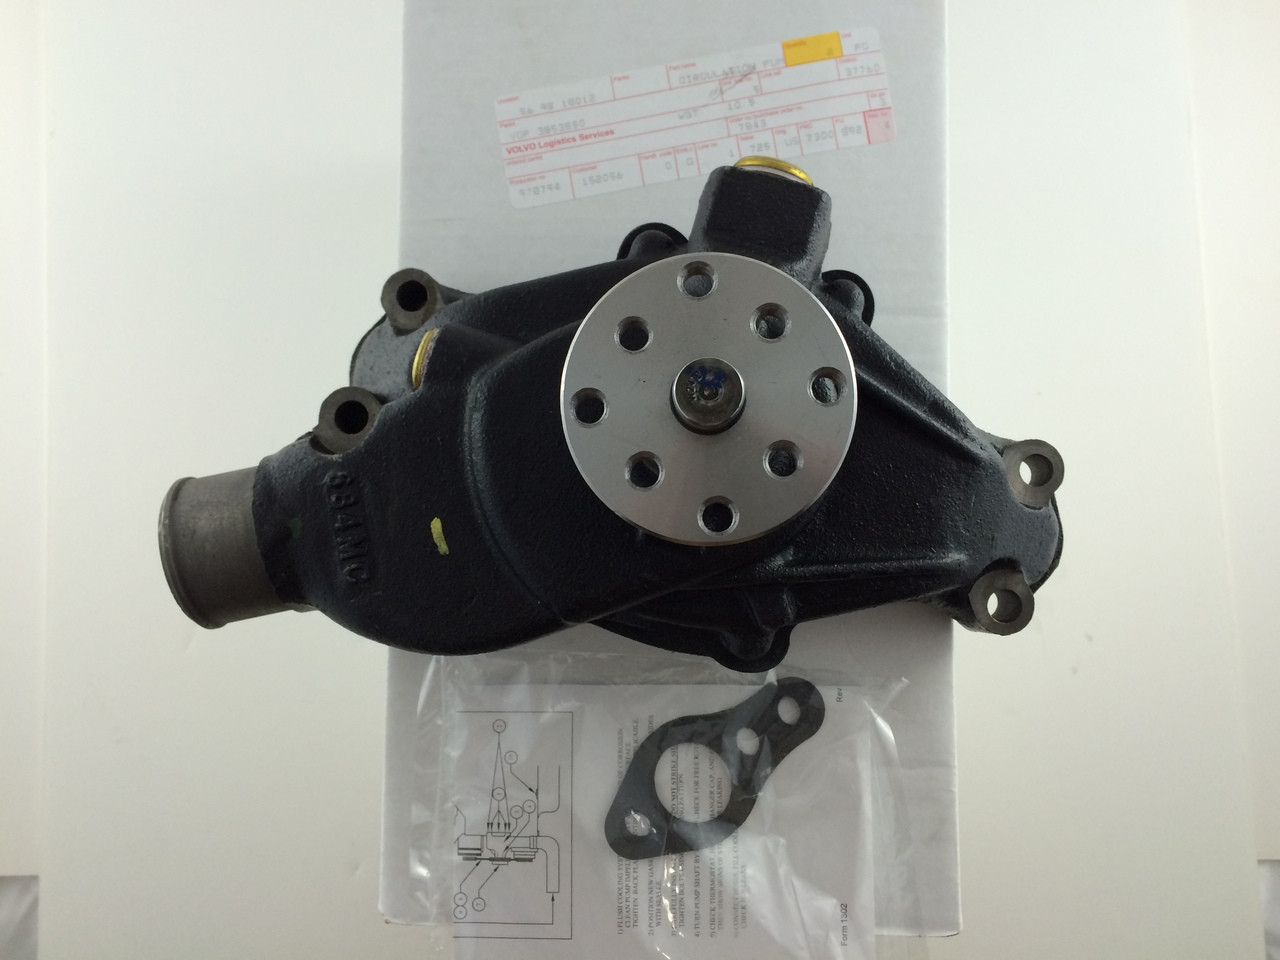 medium resolution of  132 58 circulation water pump 3853850 in stock ready to ship cecil marine